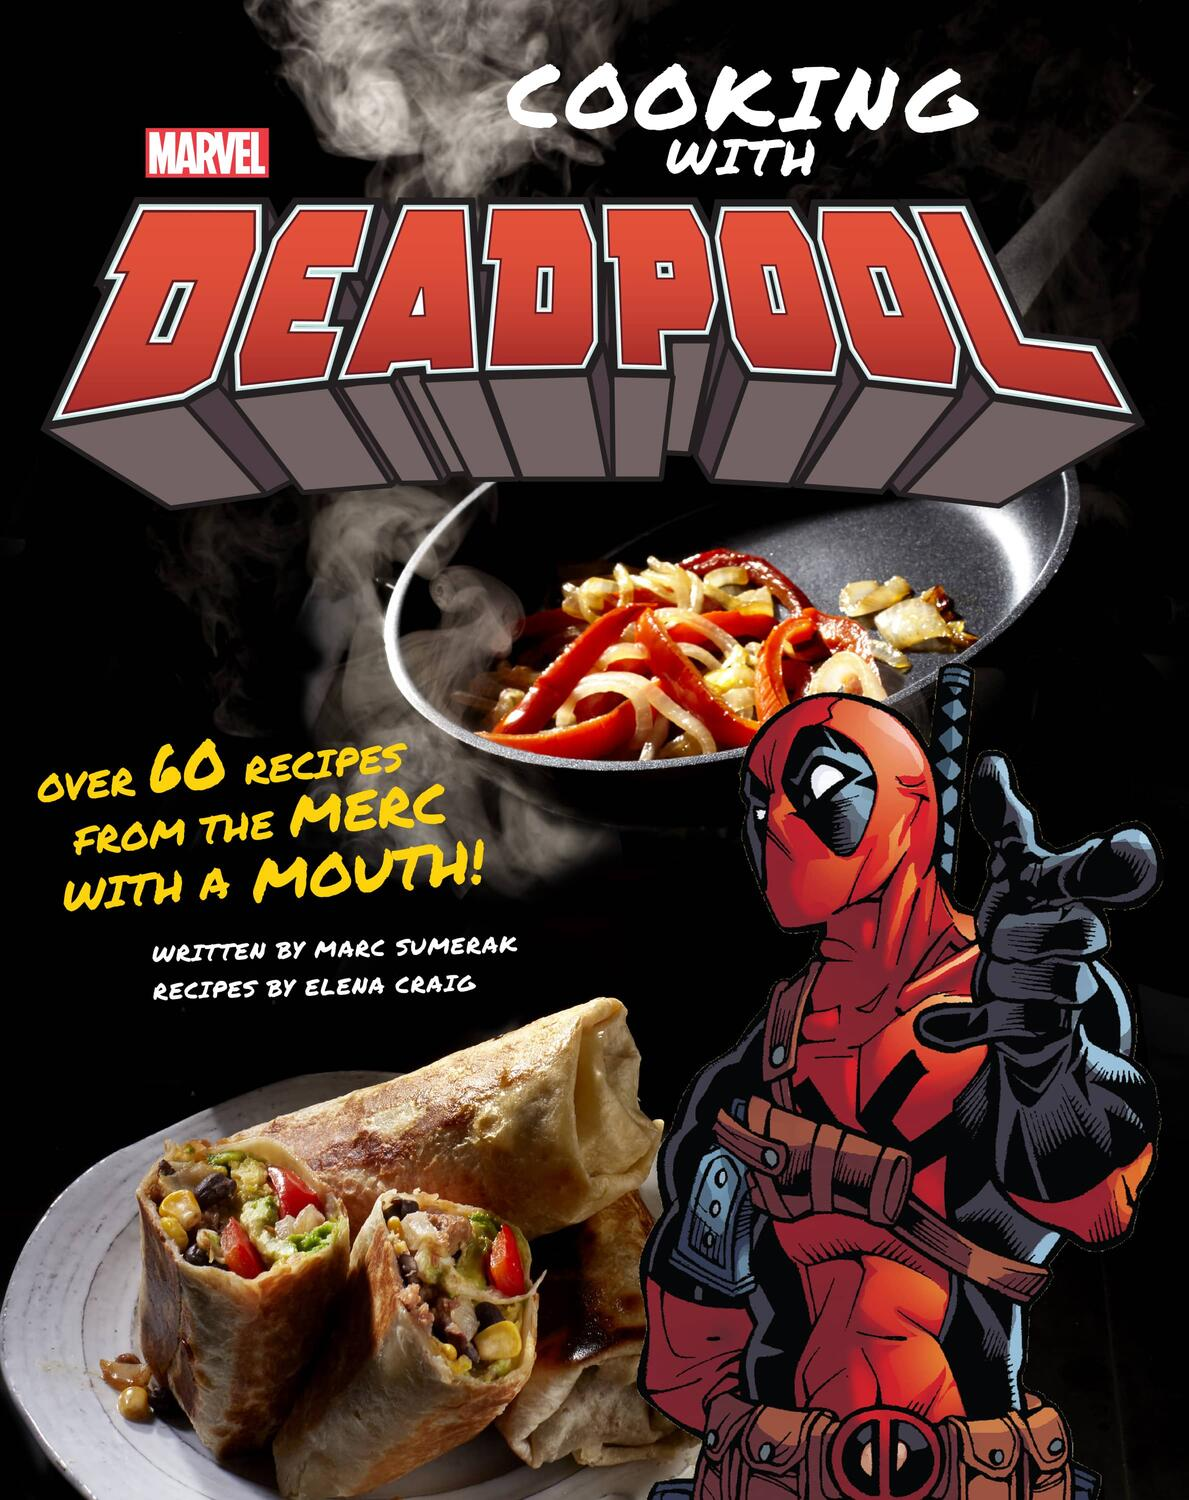 'Cooking with Deadpool'